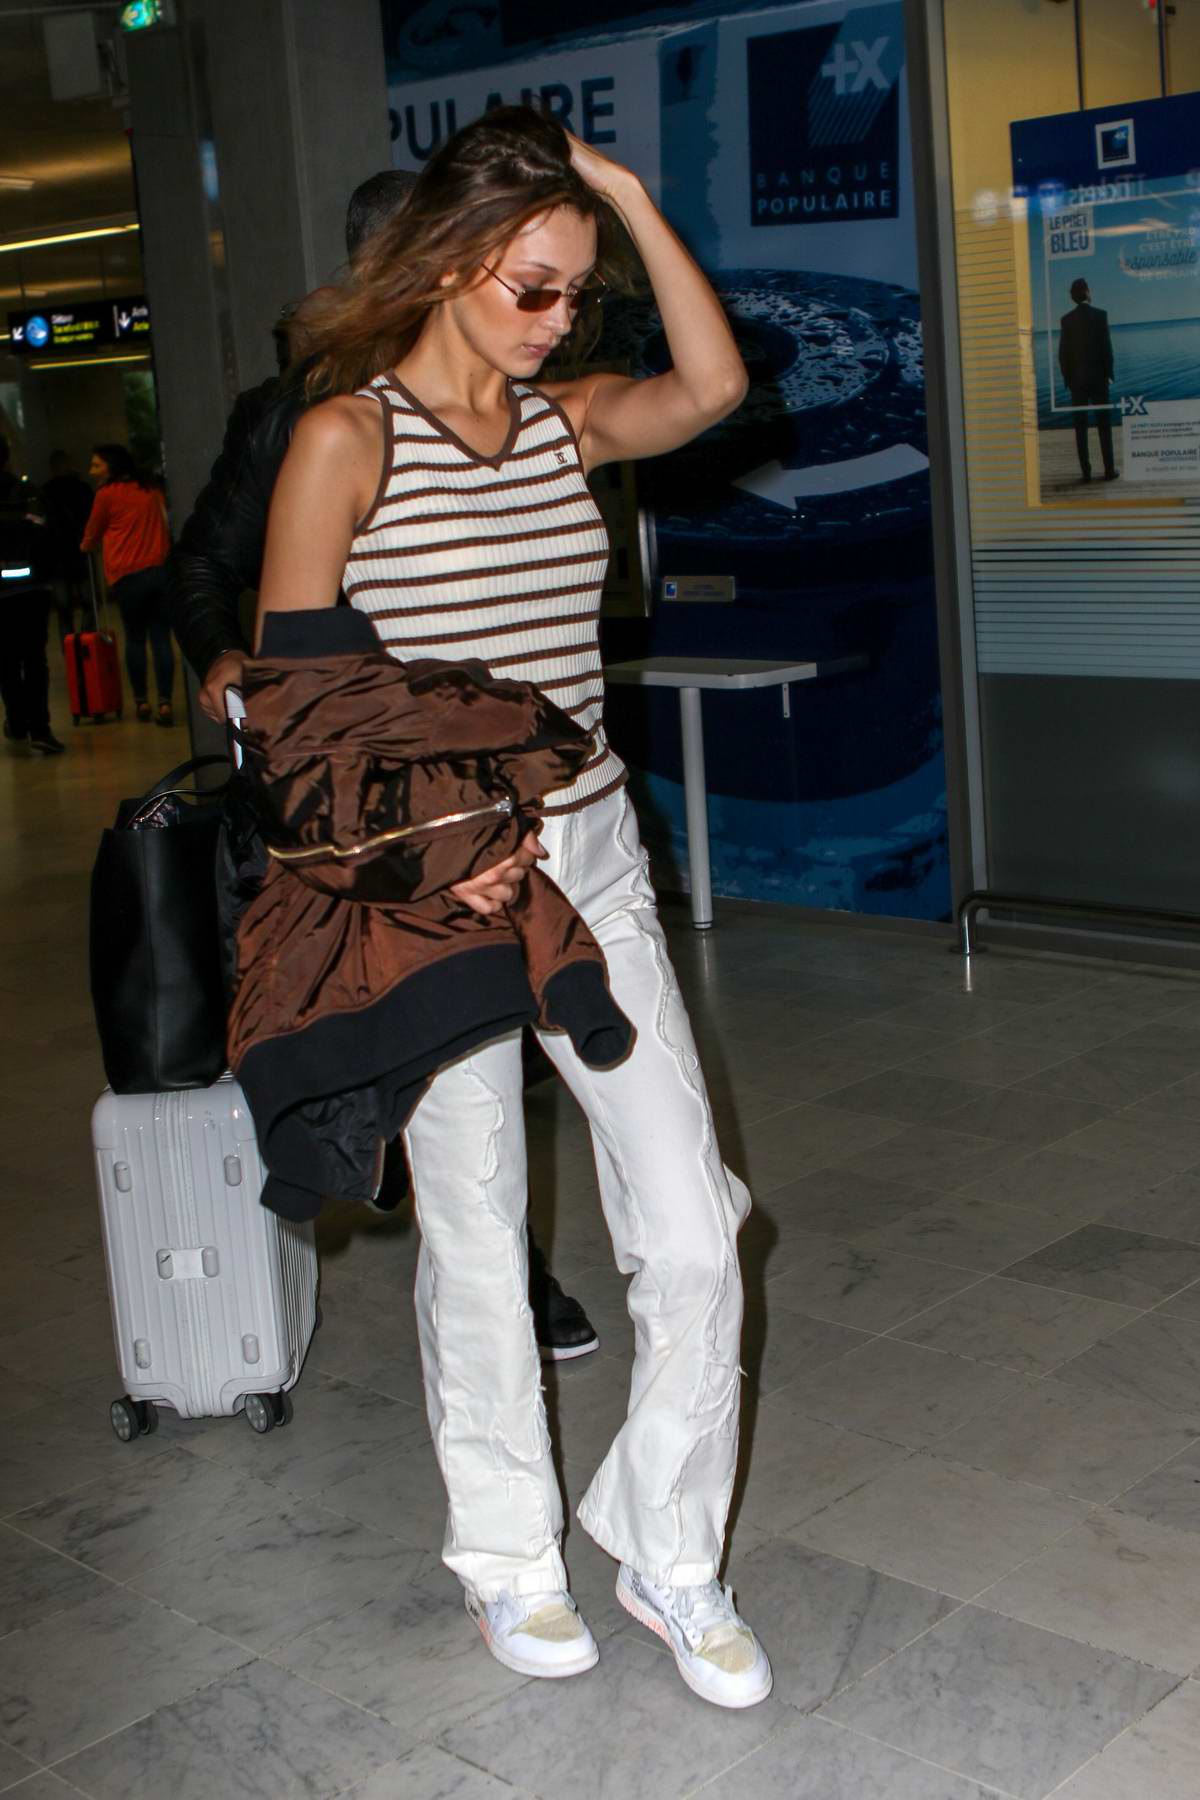 Bella Hadid spotted in a striped tank top and white pants as she arrives at Nice airport, France